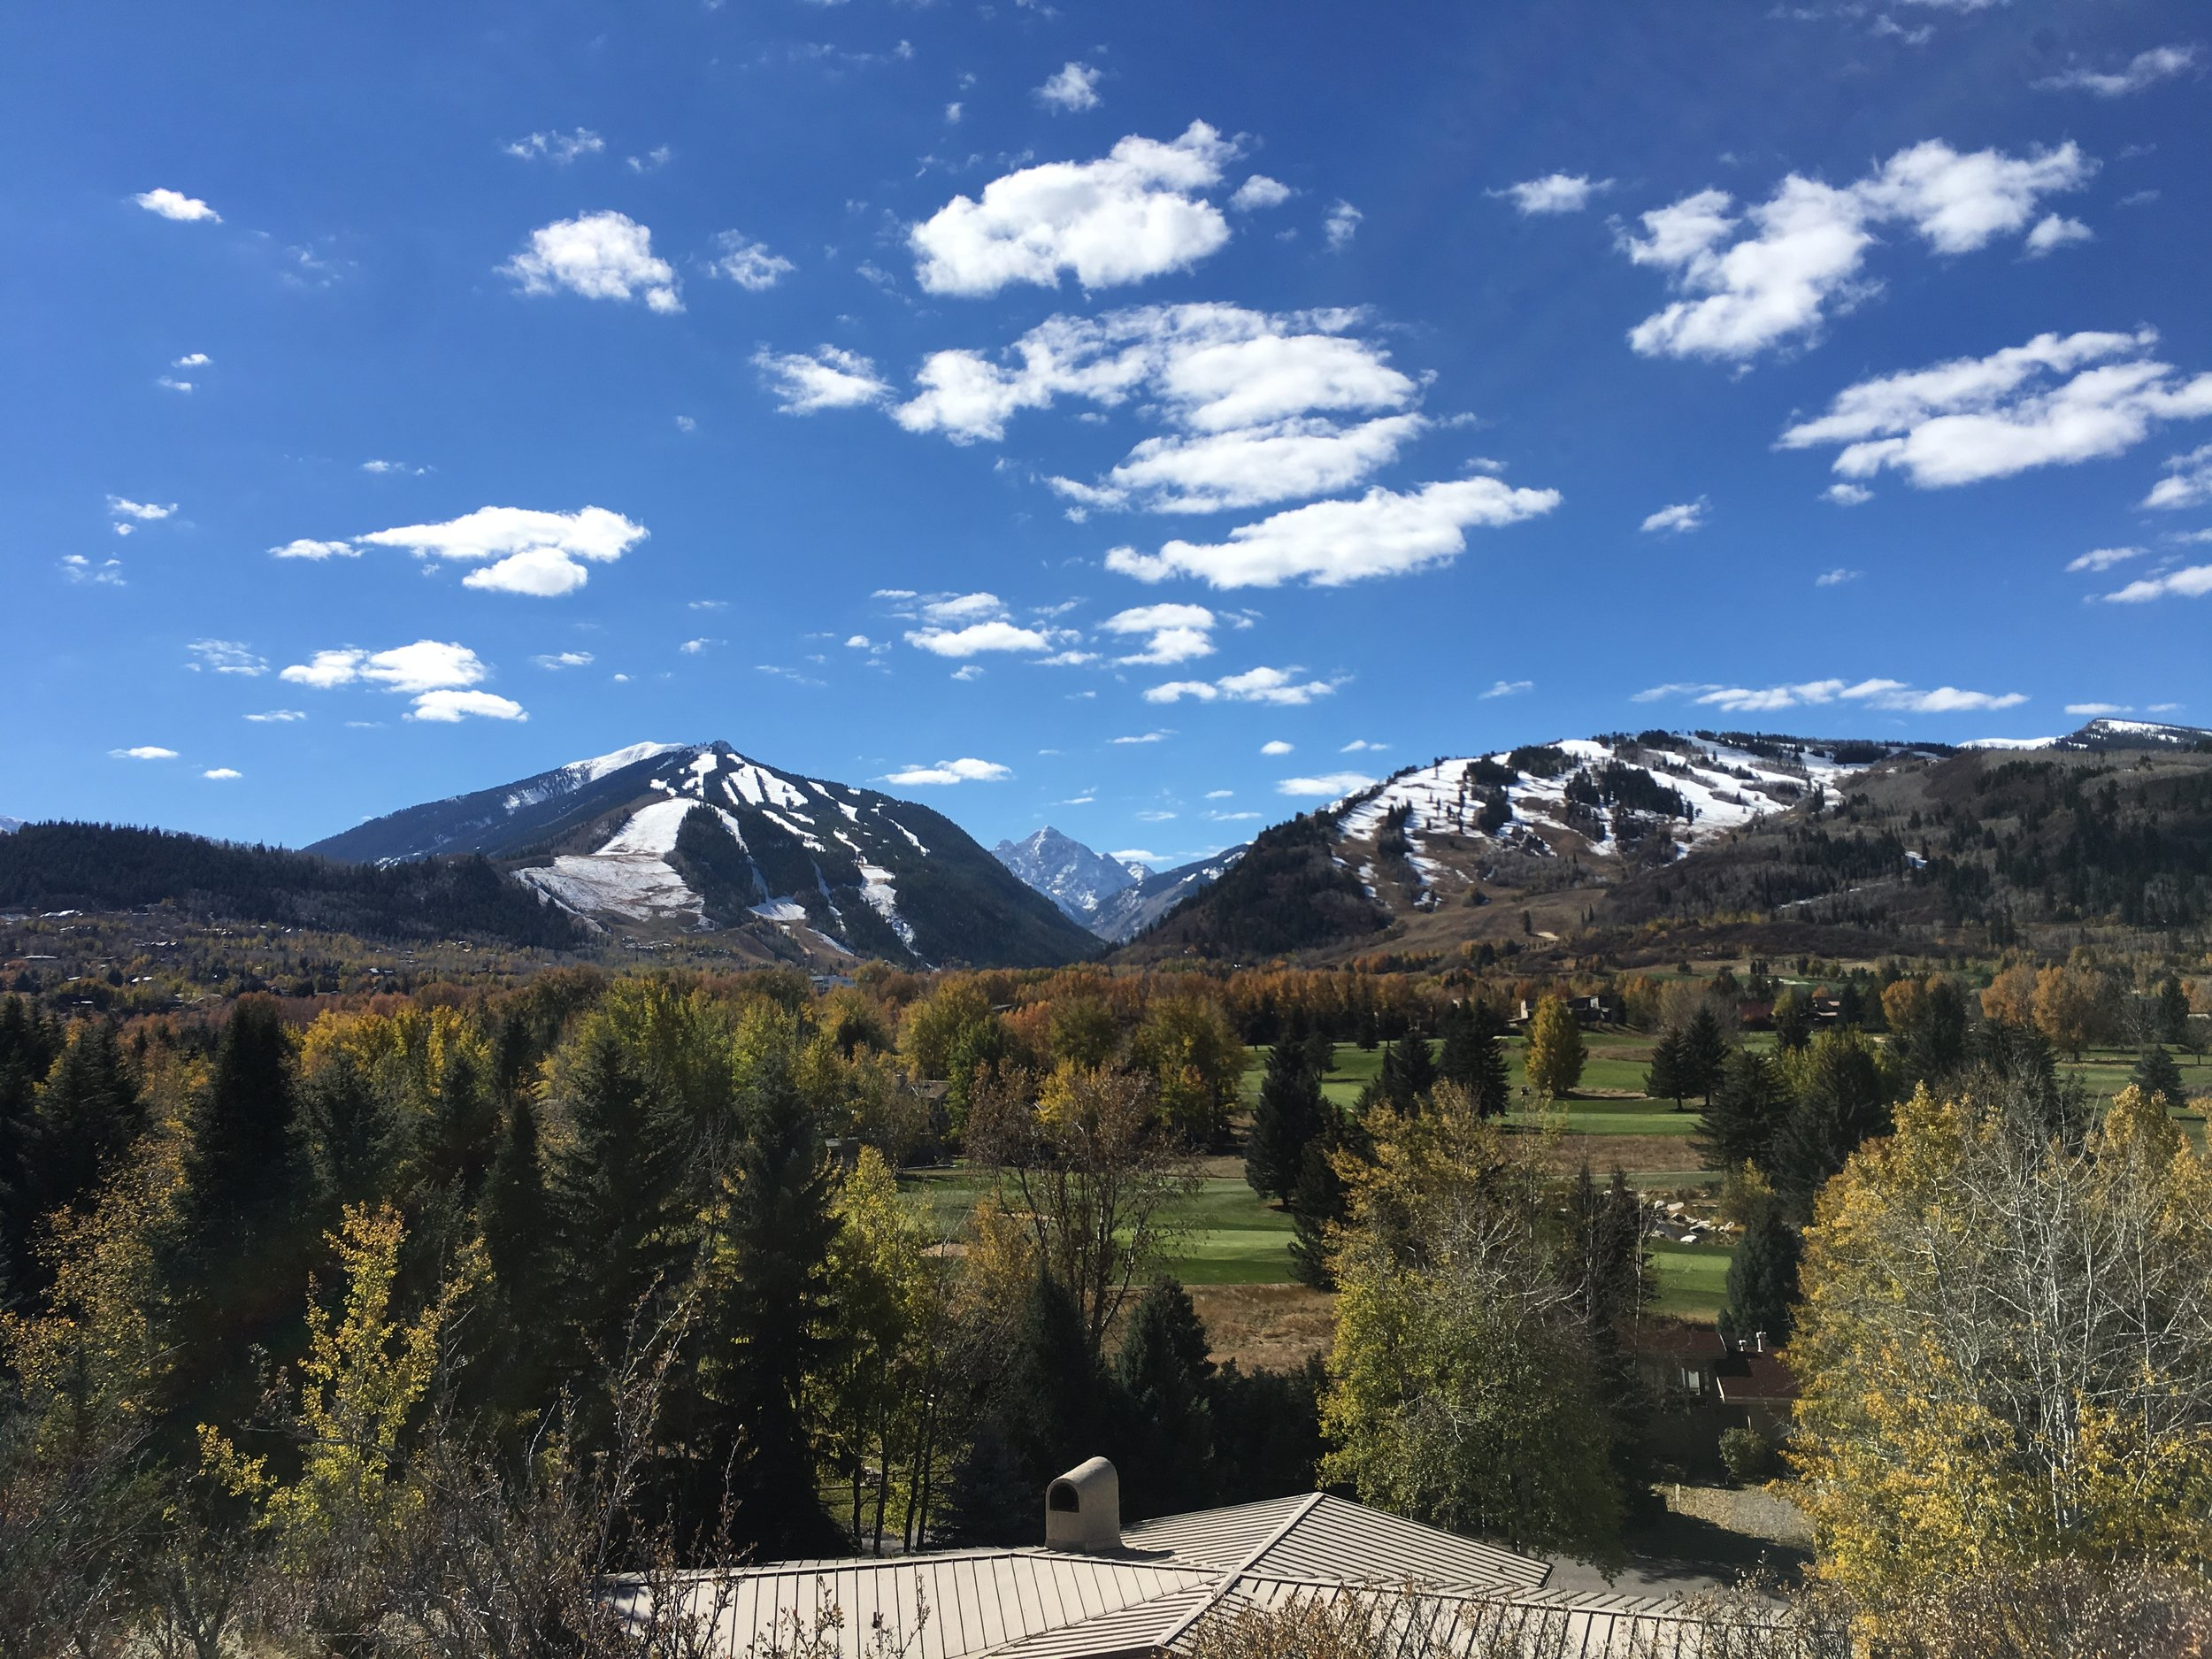 View from Red Butte (off Cemetery Lane) looking over the Aspen Golf Course up Maroon Creek with Aspen Highlands, Buttermilk and Pyramid Peak in the distance.